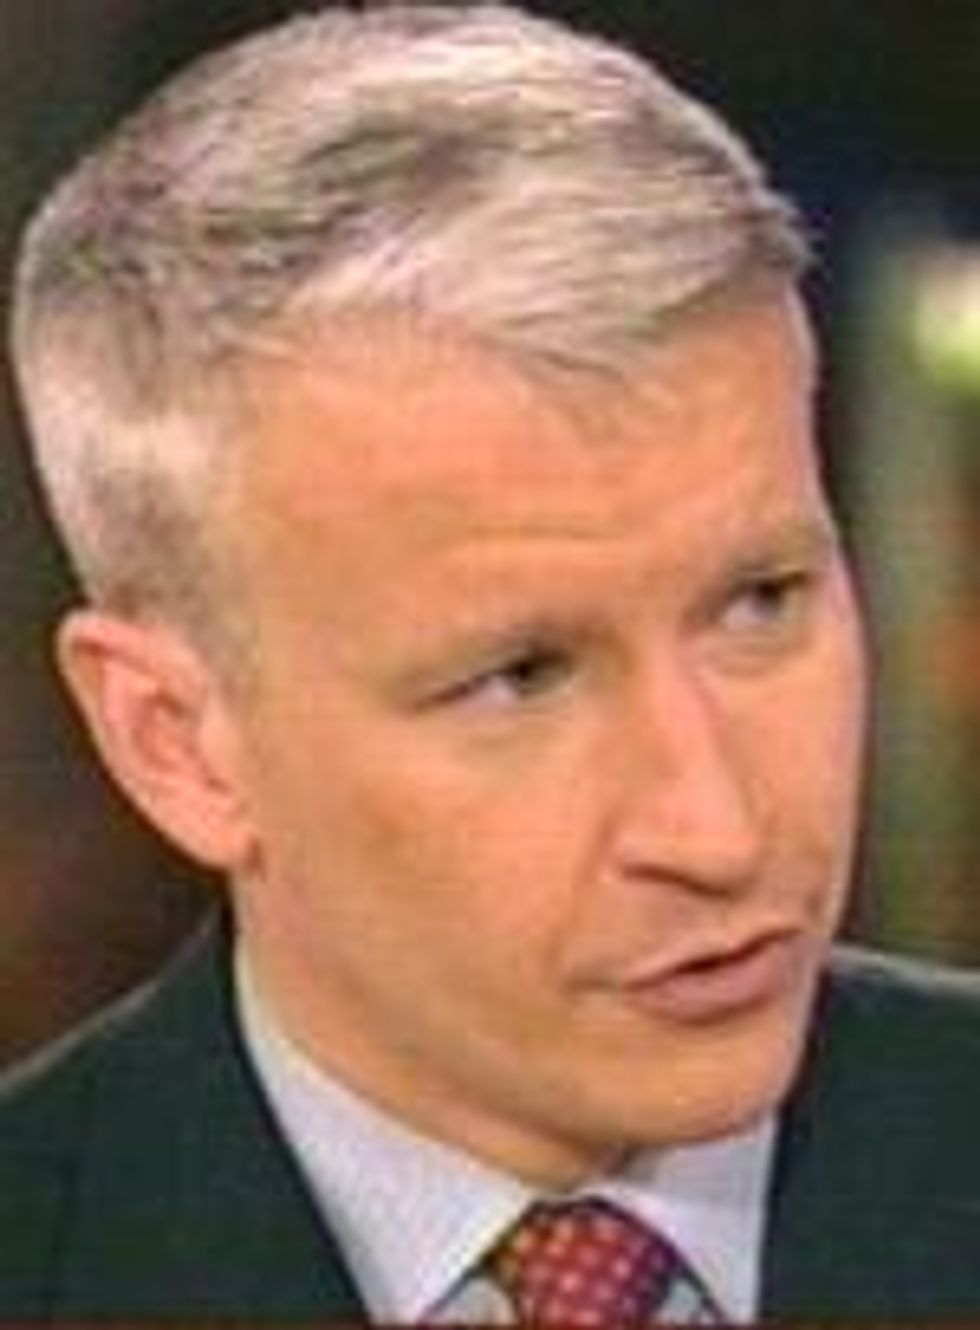 Anderson Cooper as James Bond's CIA Sidekick?